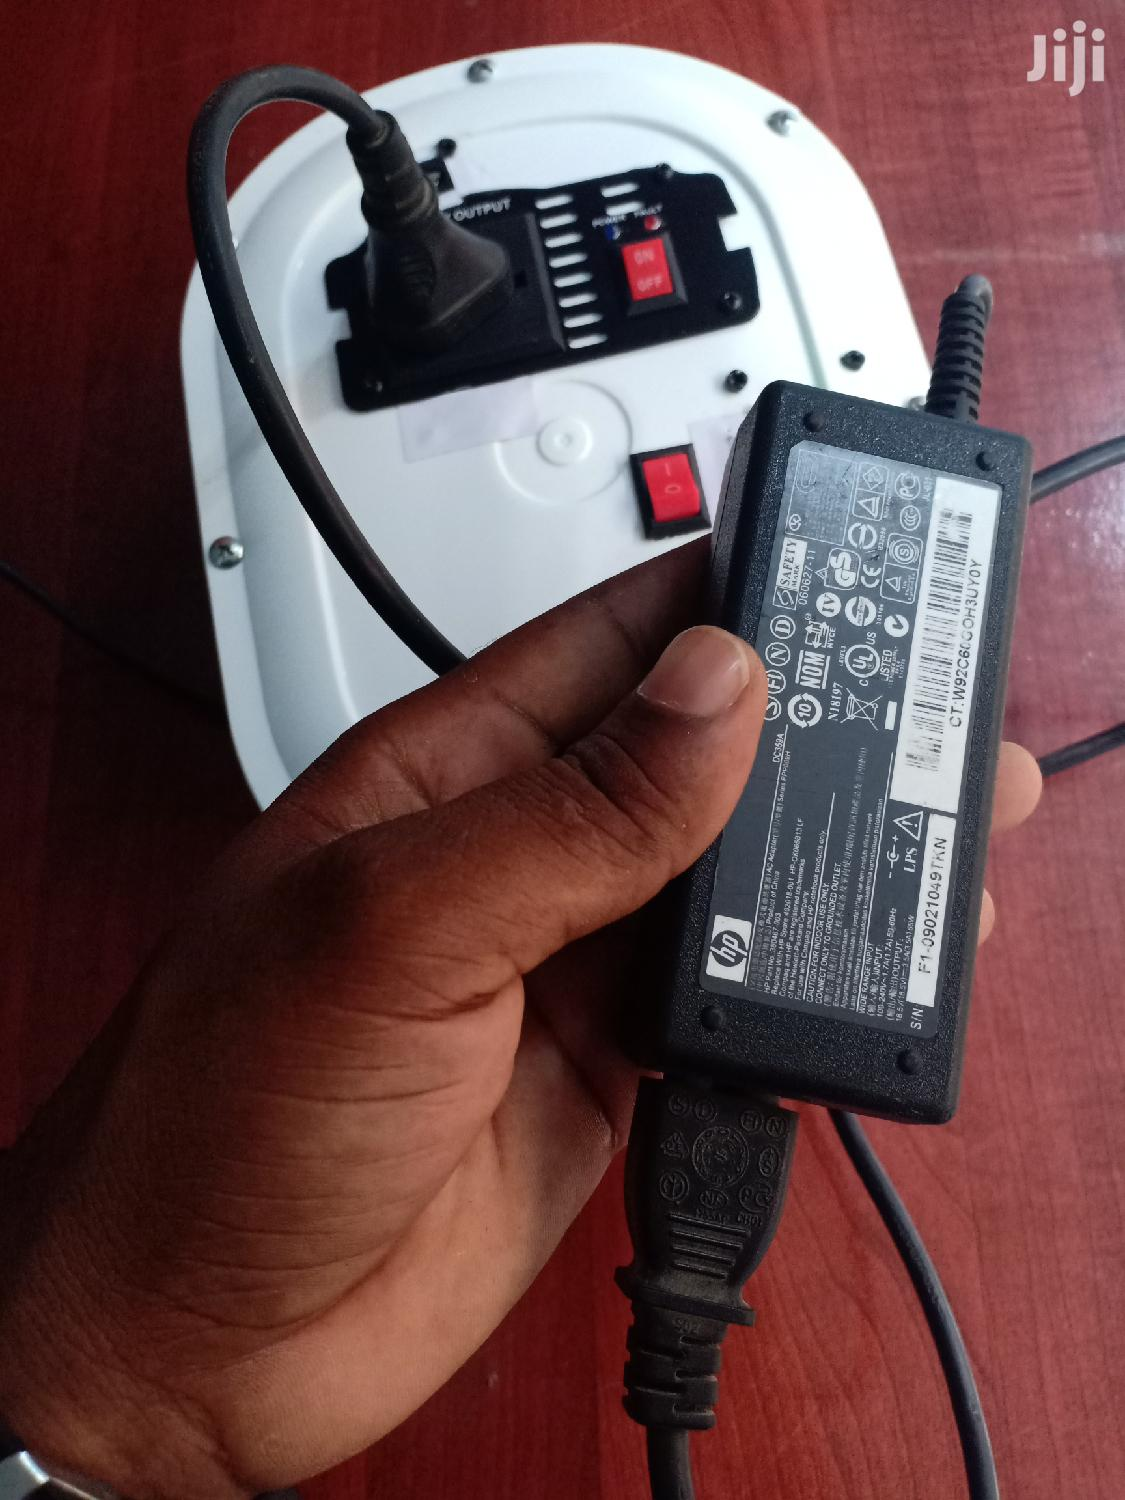 Hight Voltage Powerbank, Output 220V.300W,16,000mah | Accessories for Mobile Phones & Tablets for sale in Kinondoni, Dar es Salaam, Tanzania